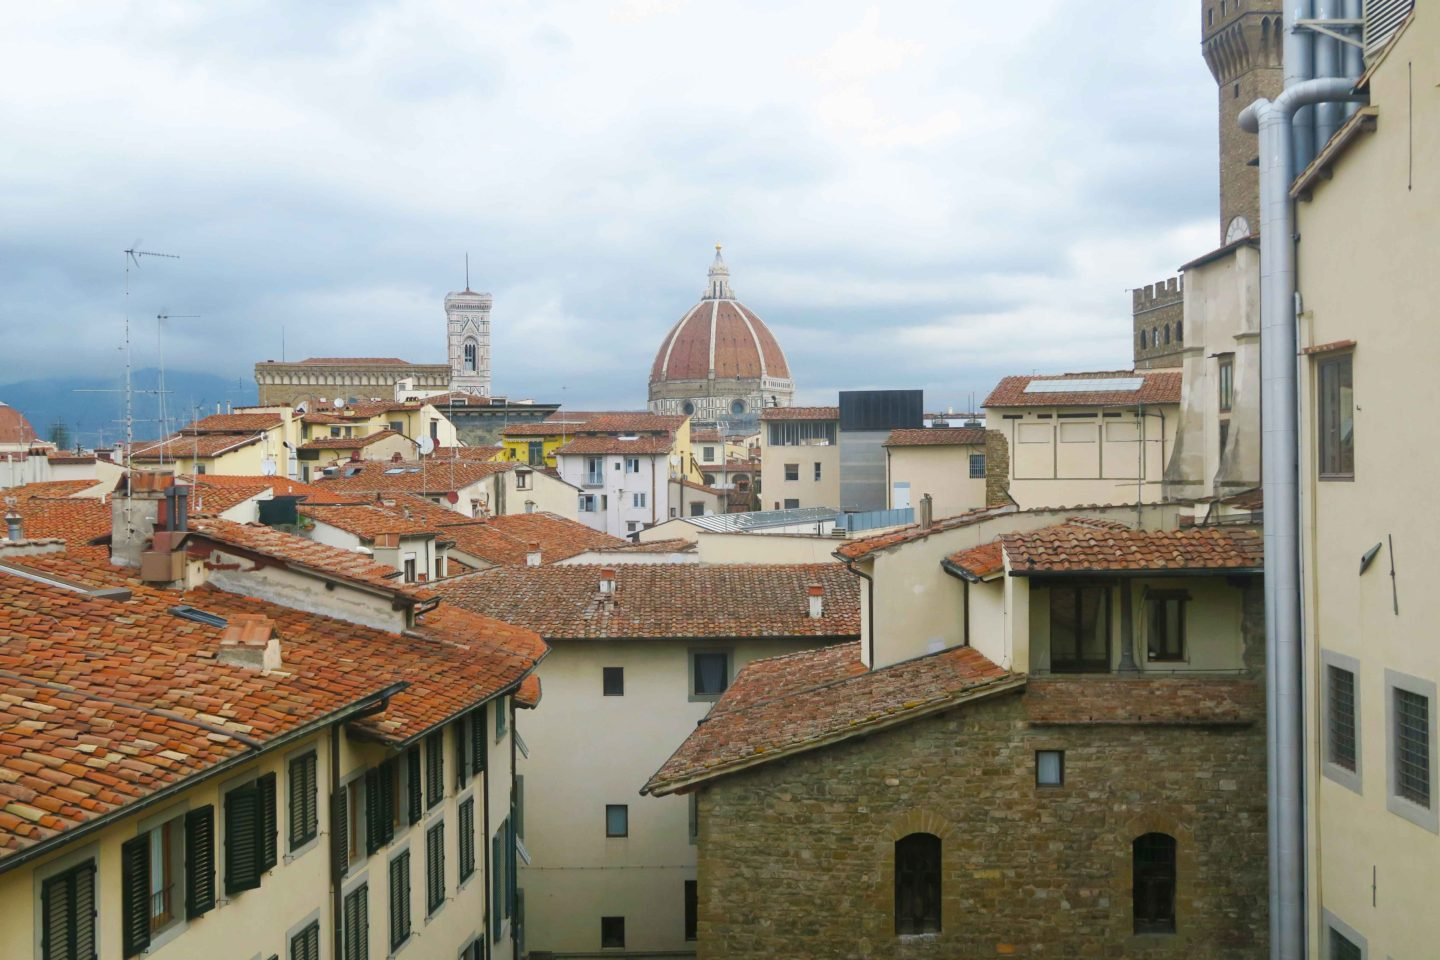 view from the uffizi gallery of the roof tops of florence